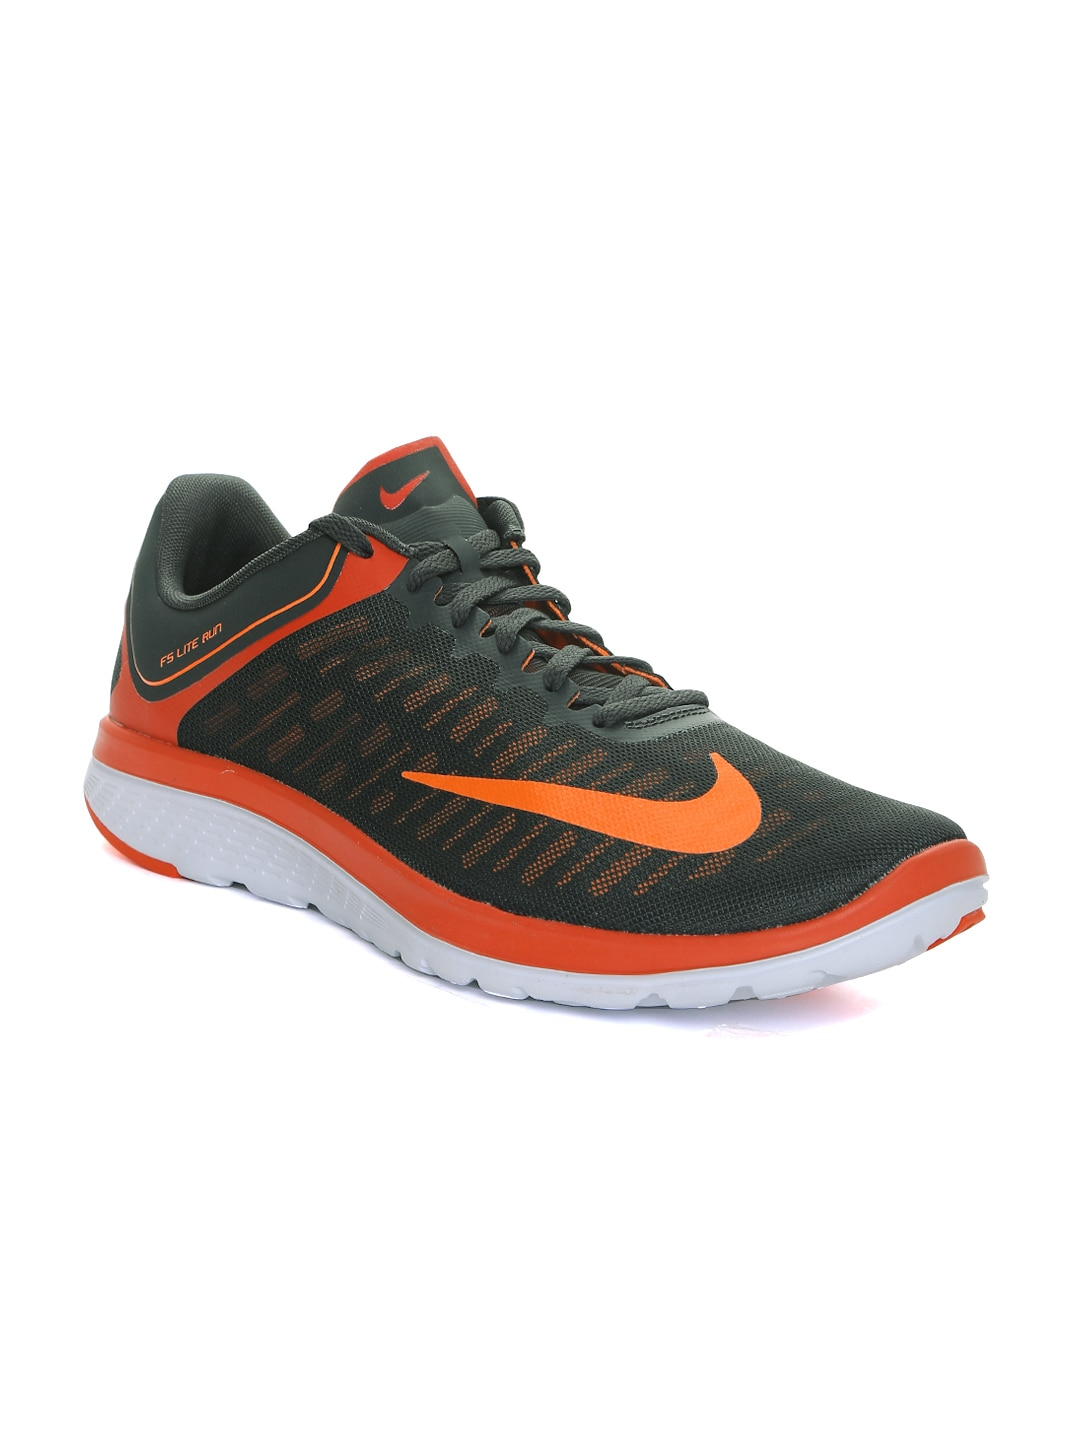 Men's Nikes. Update your footwear collection with men's Nike shoes from Kohl's. Men's Nikes are just what you need for your everyday wardrobe. Replace worn-out sneakers with men's Nike running shoes, walking shoes, skate shoes and more styles perfect for your life.